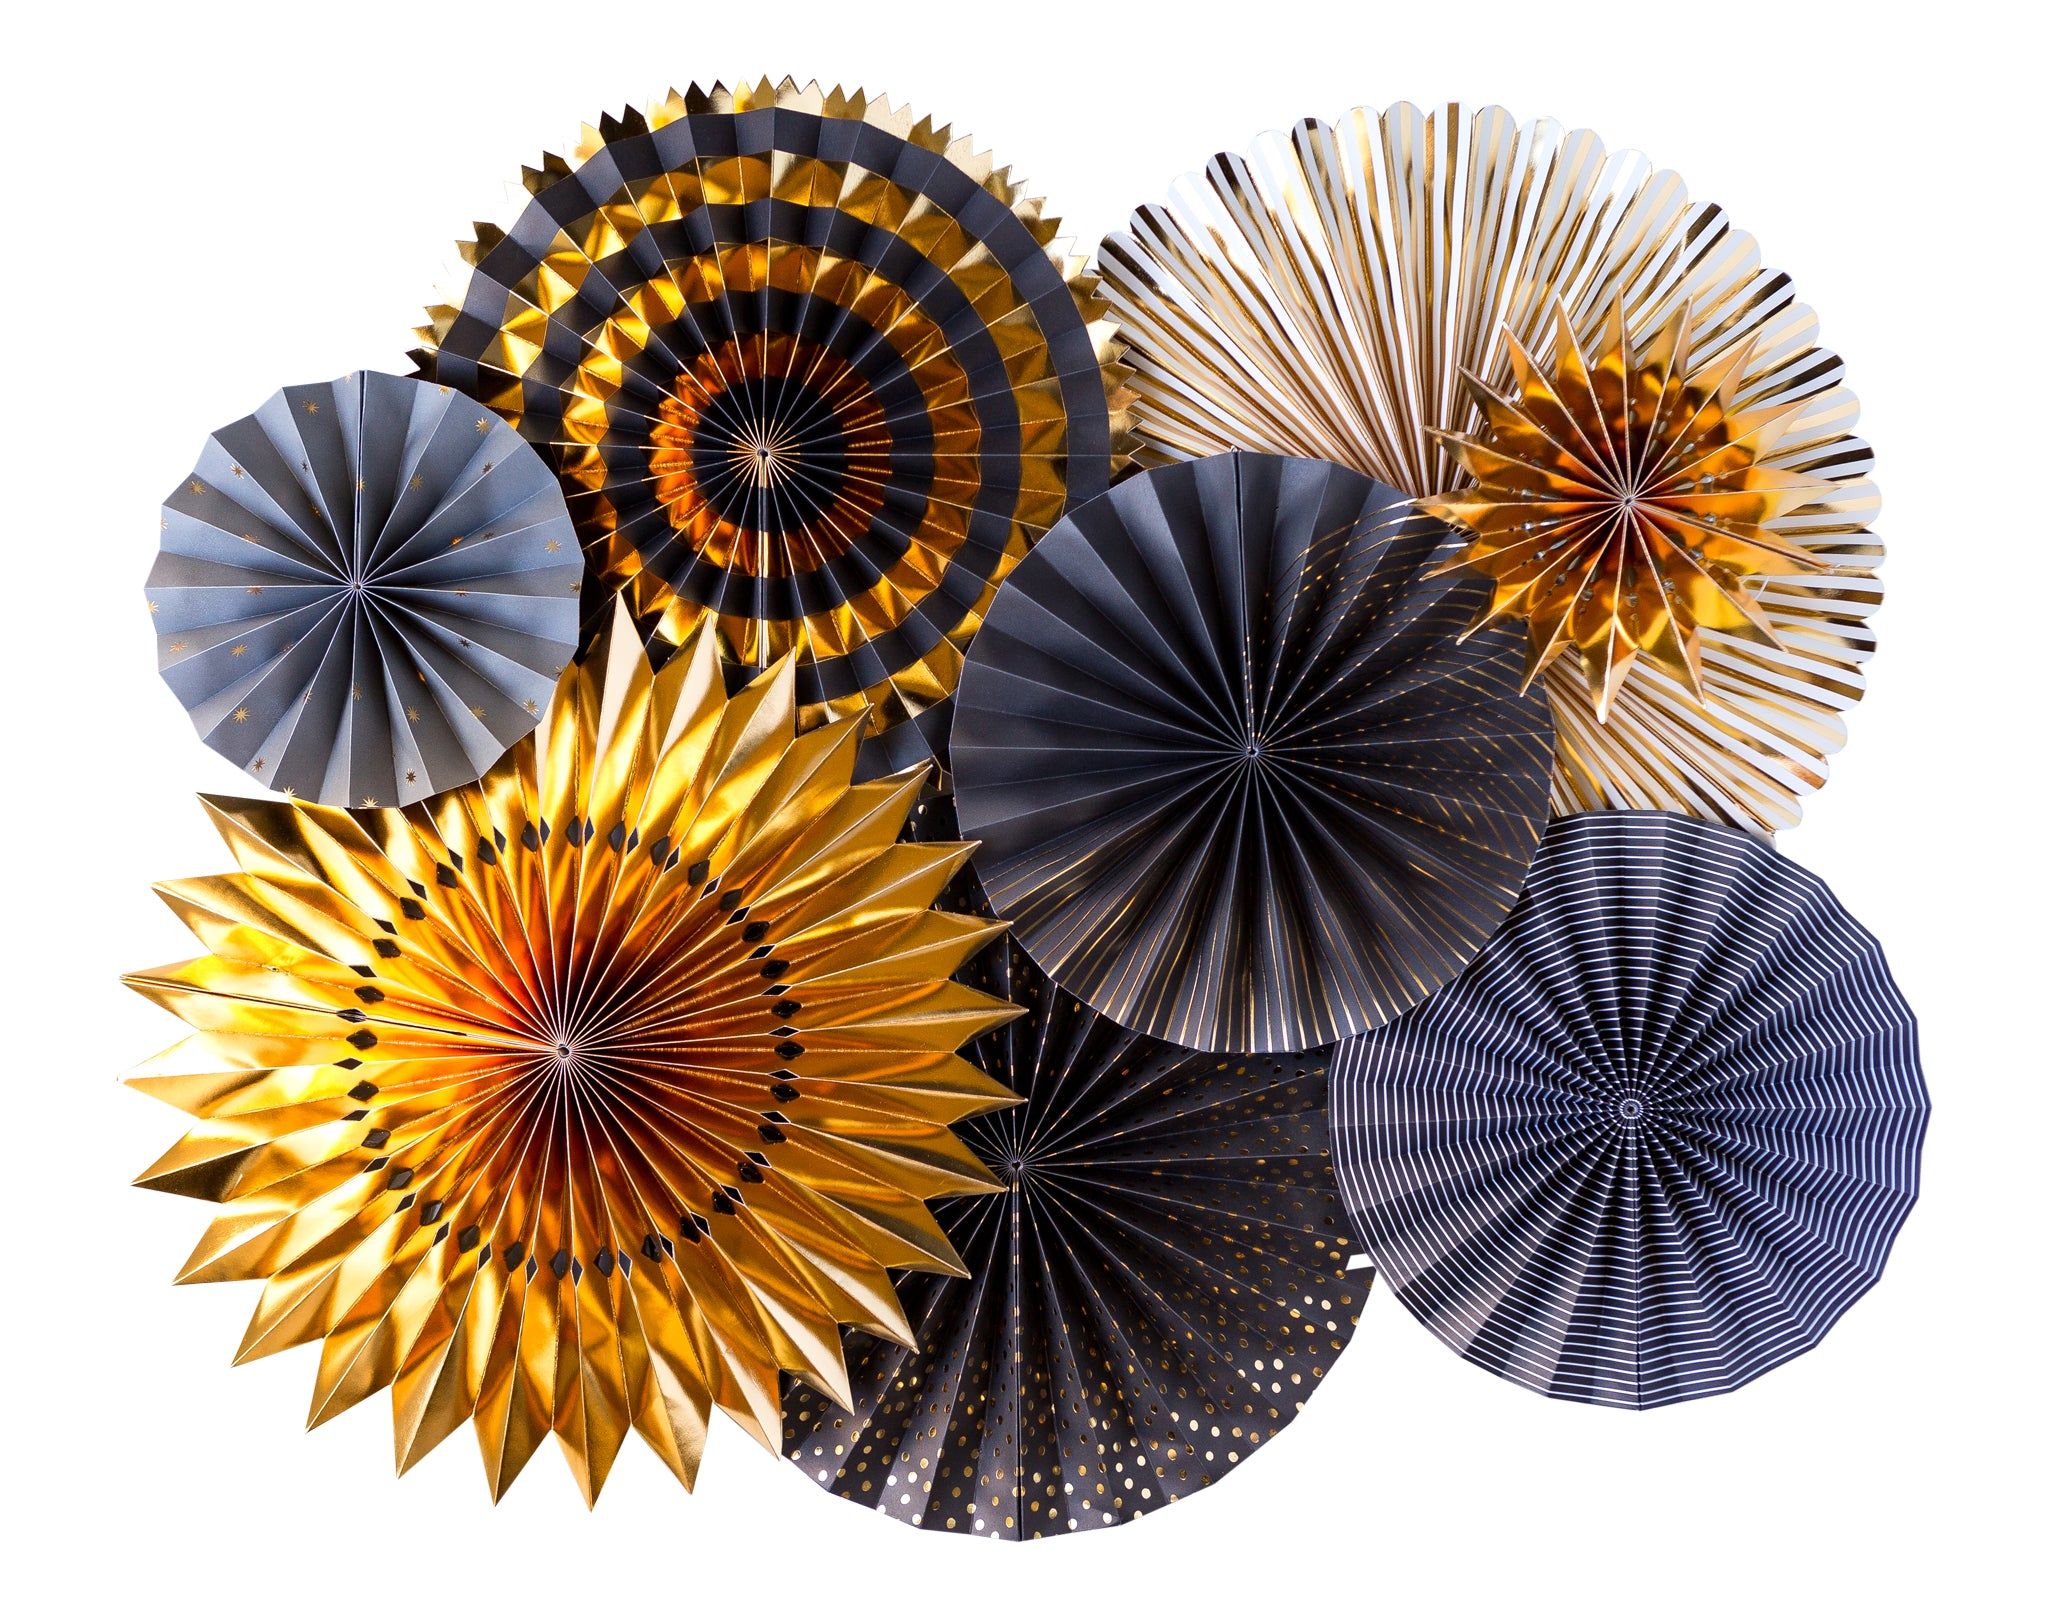 Black & Gold Party Fans, Rosettes Backdrops for Birthdays, Weddings, Graduation, New Years, and Anniversary